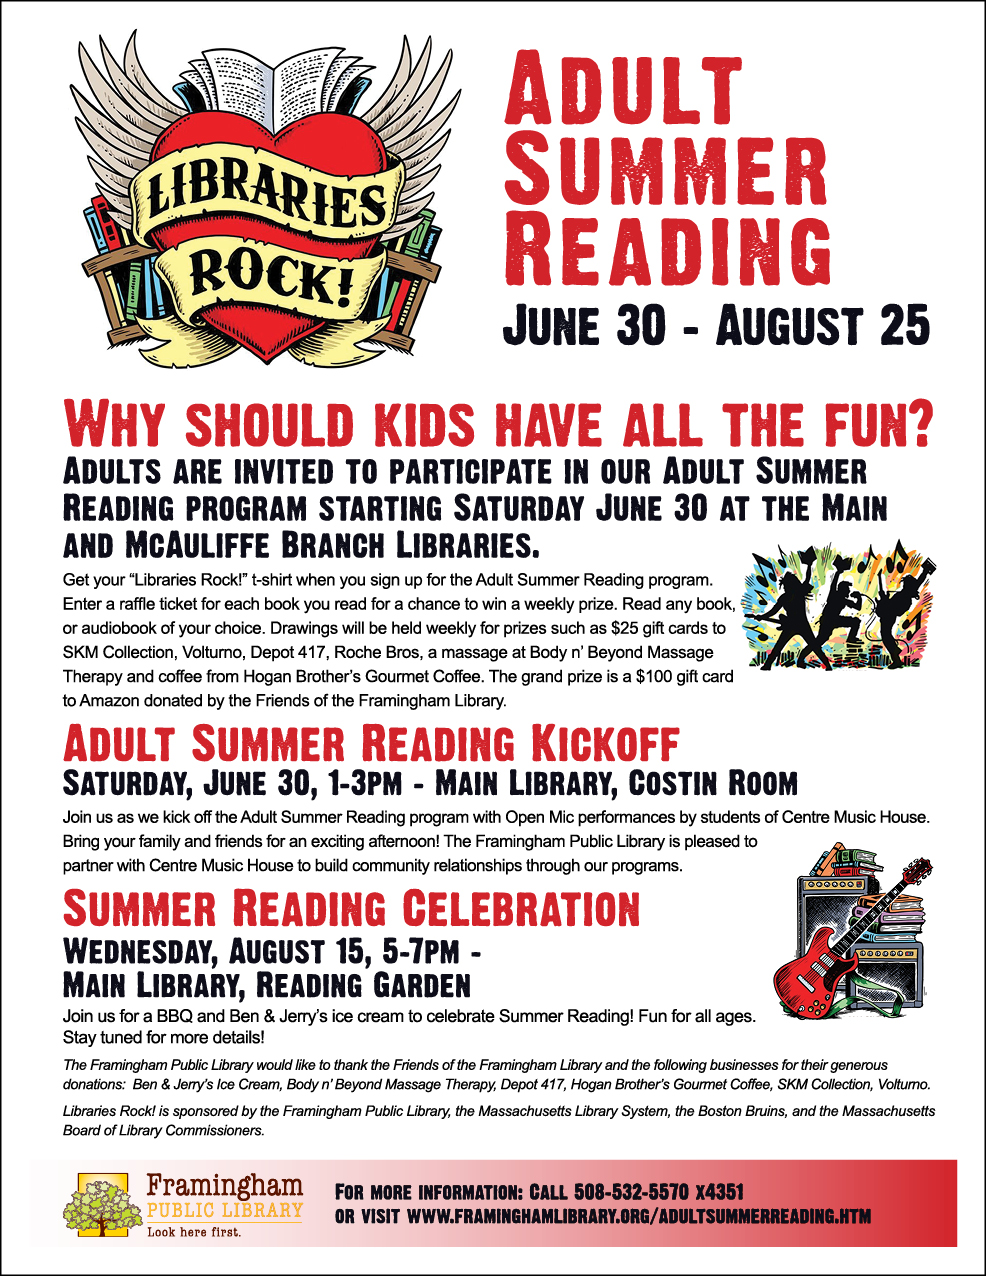 poster of Adult Summer Reading program activities